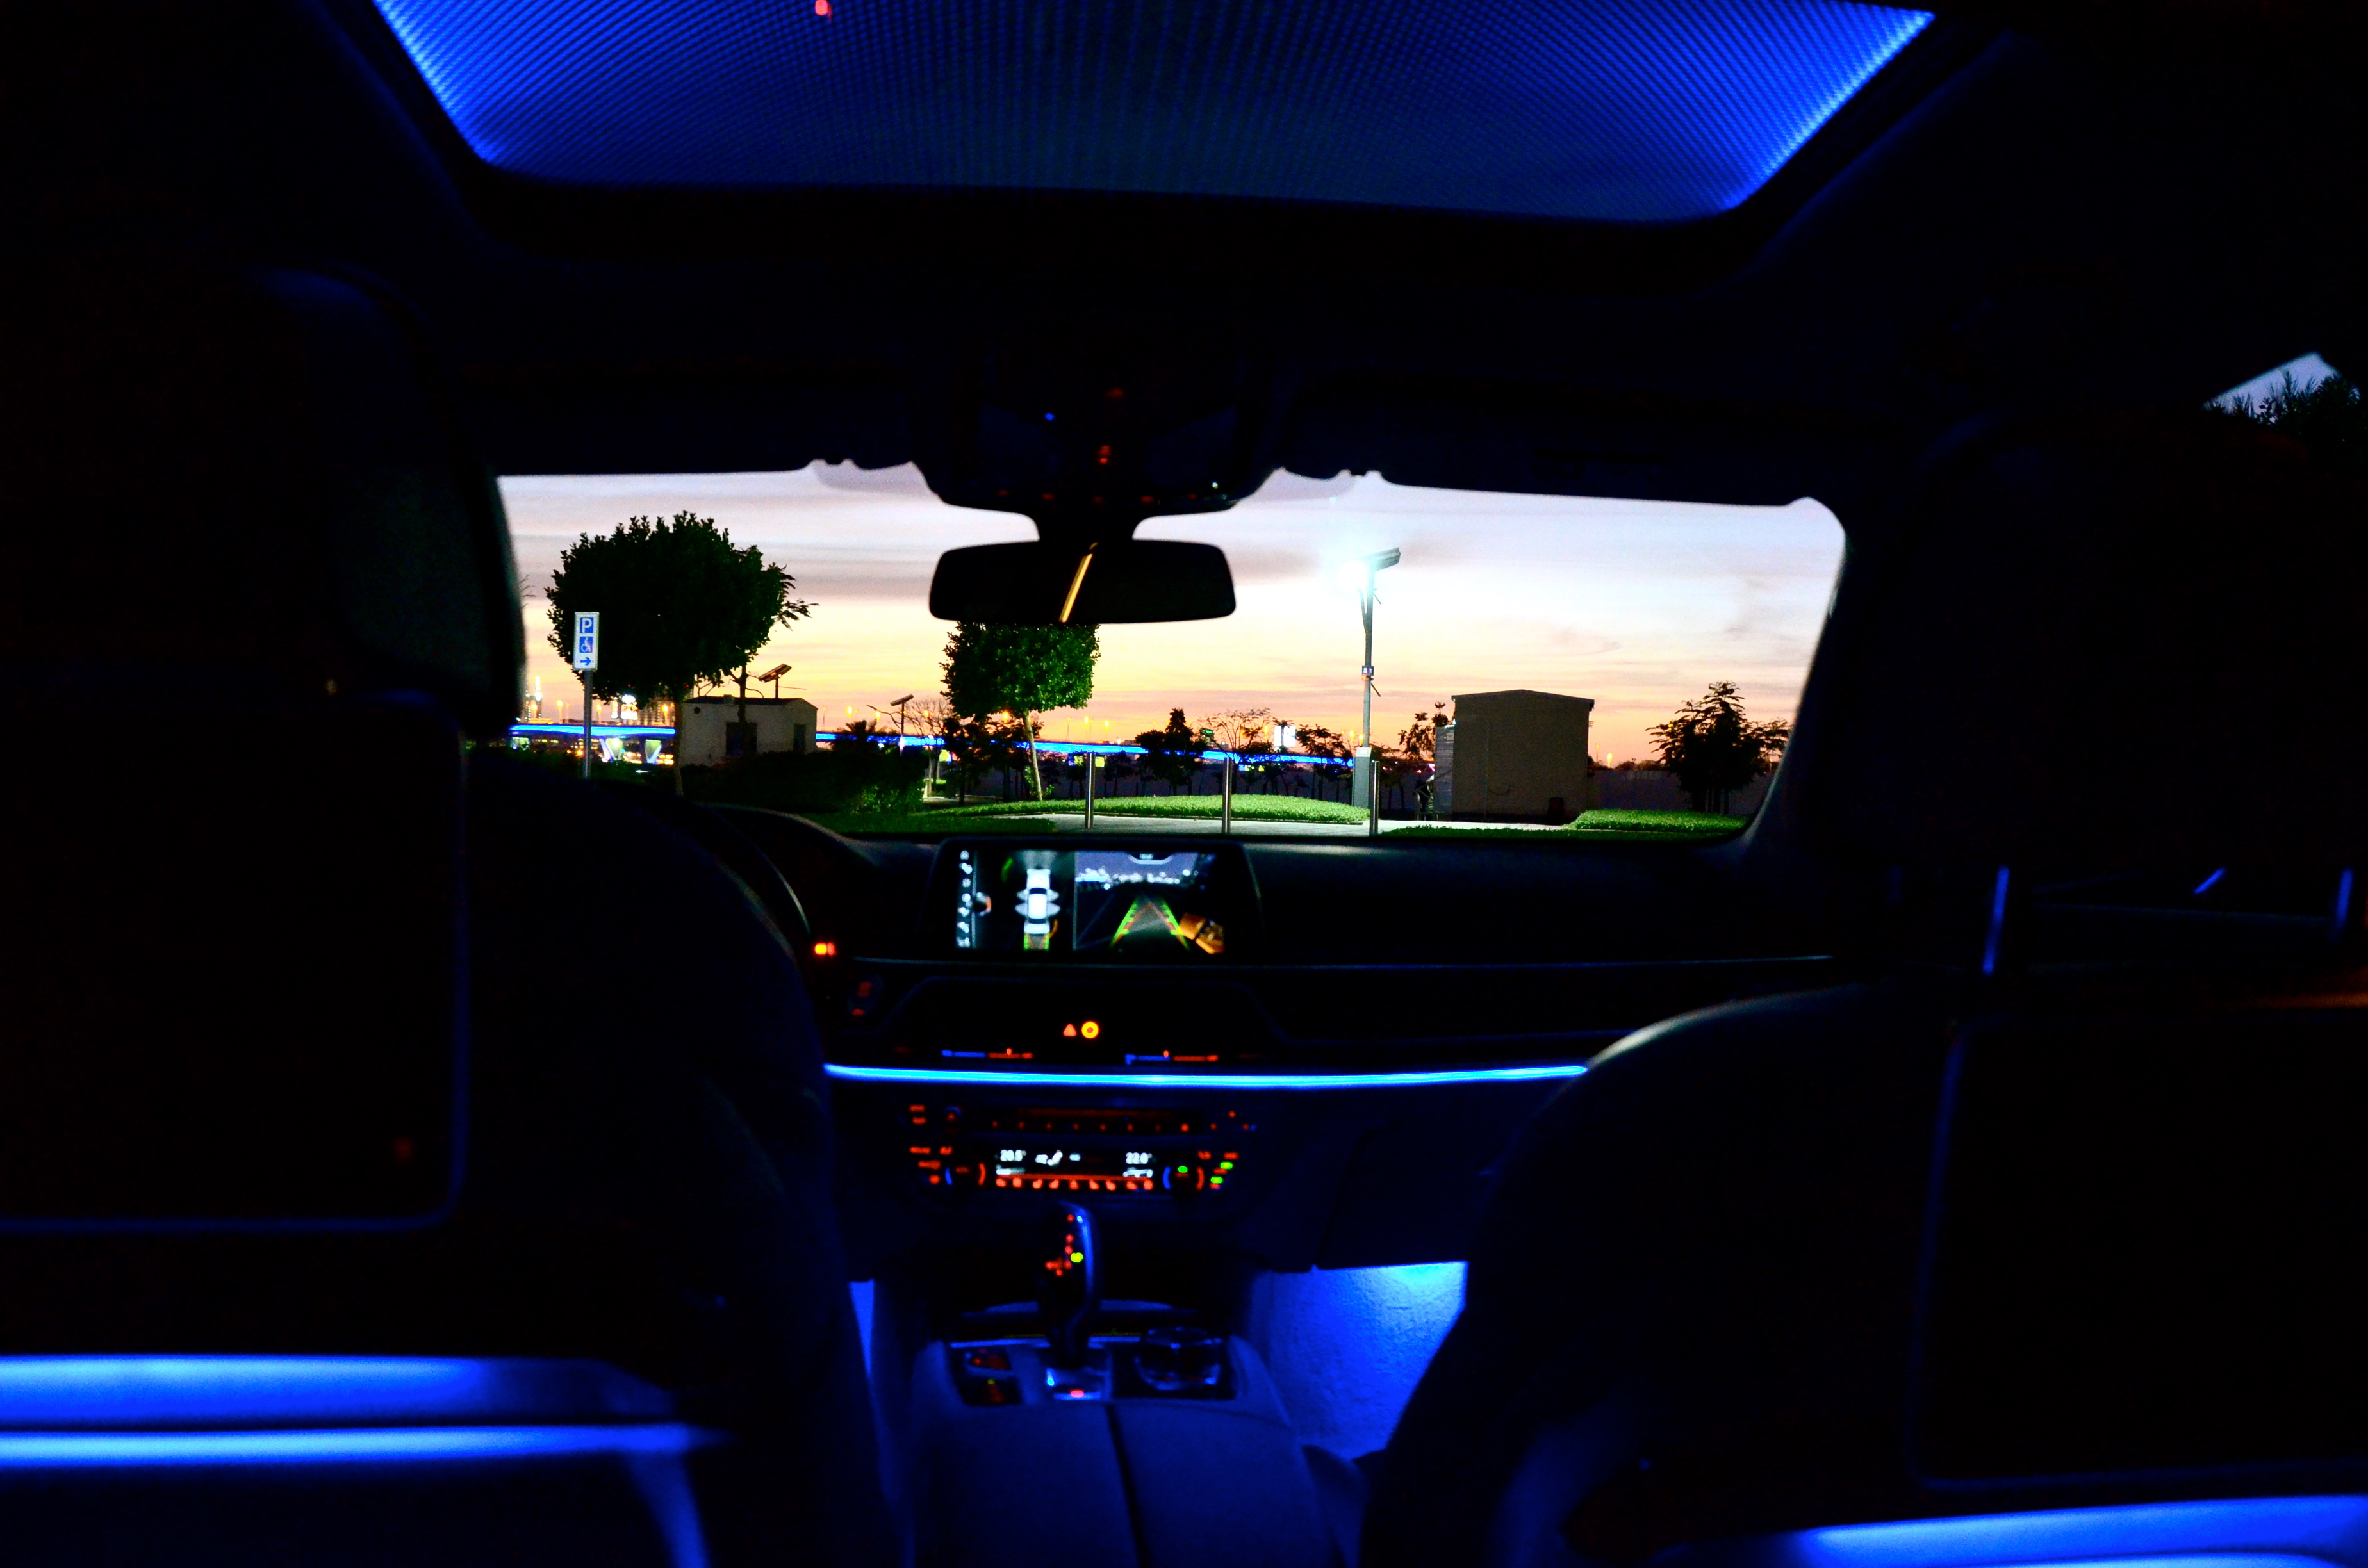 The Panorama Glass Roof Sky Lounge With Light Flooded Interior Inside BMW 750 Li 2016